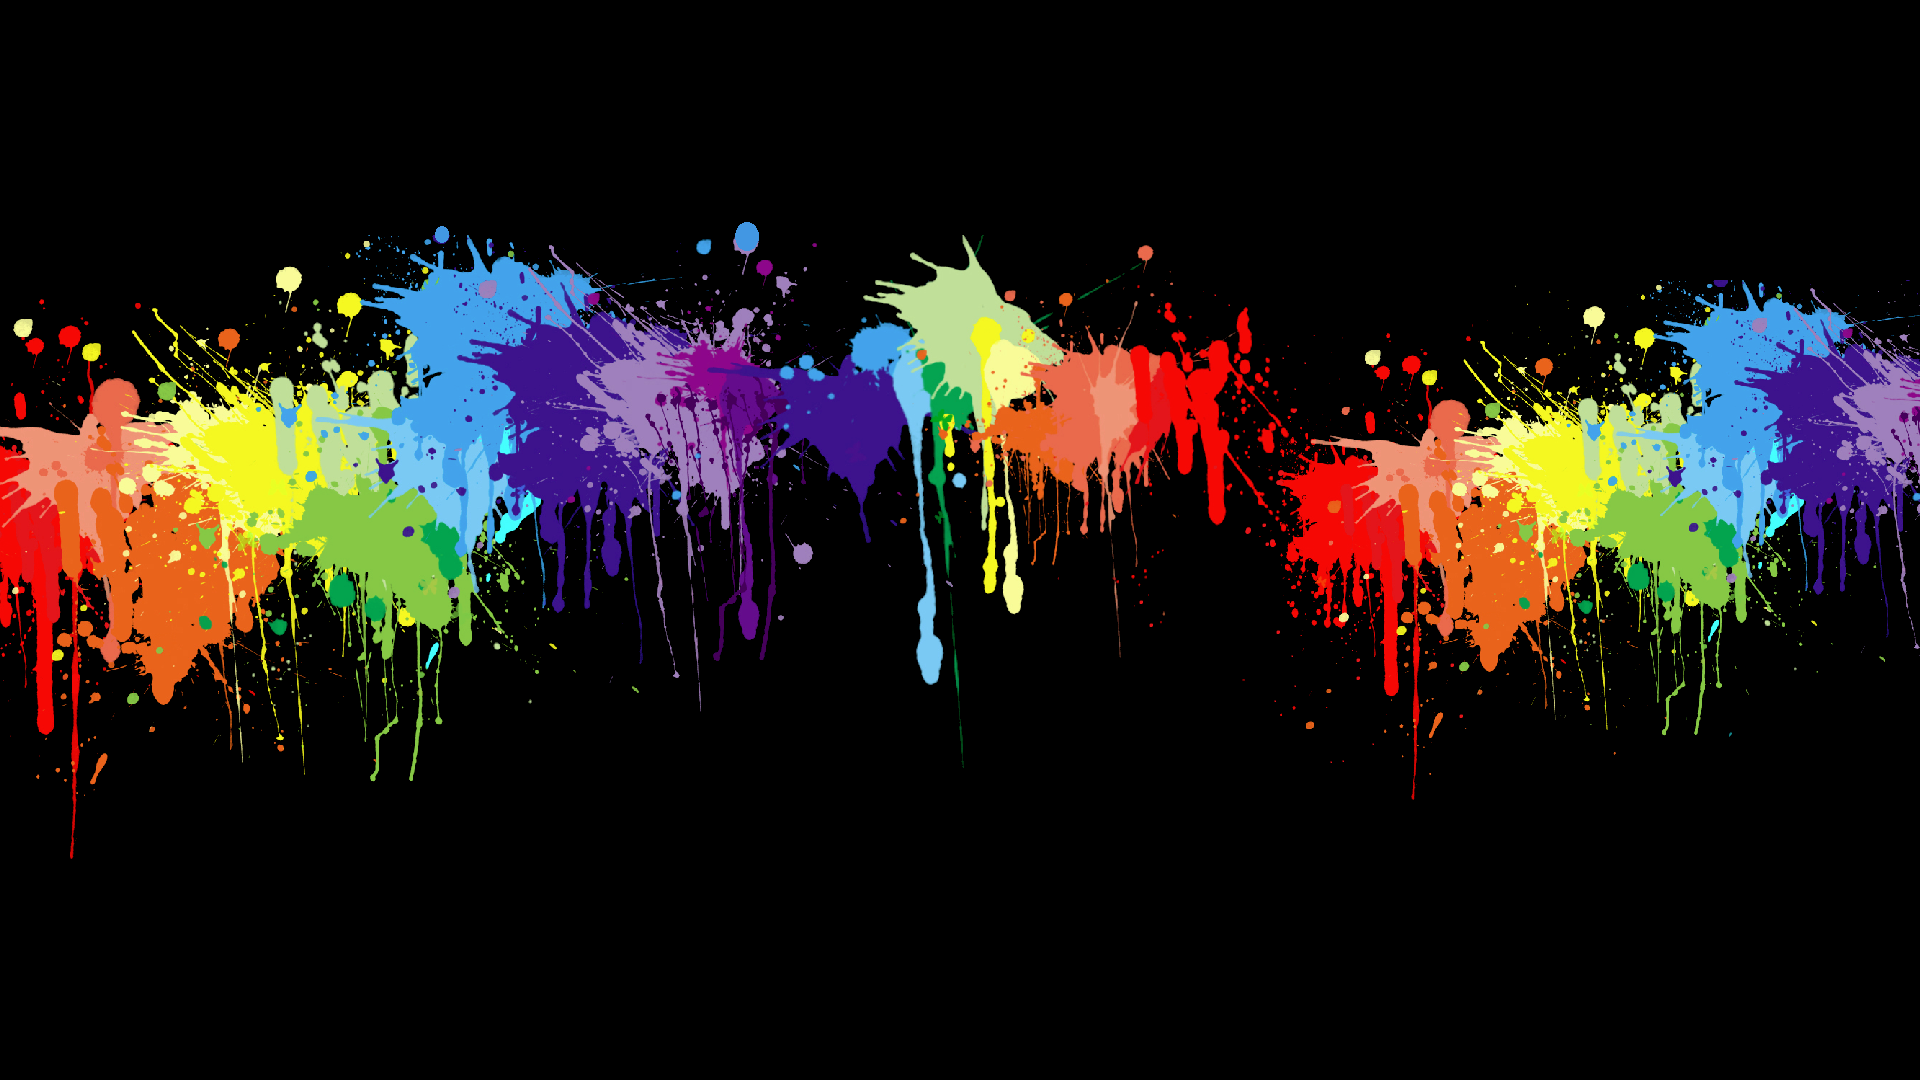 Rainbow Paint Splatters Didn Like The Graffiti Dude So Chopped 1920x1080 Hd Wallpaper Neon Painting Happy Holi Gif Cool Backgrounds